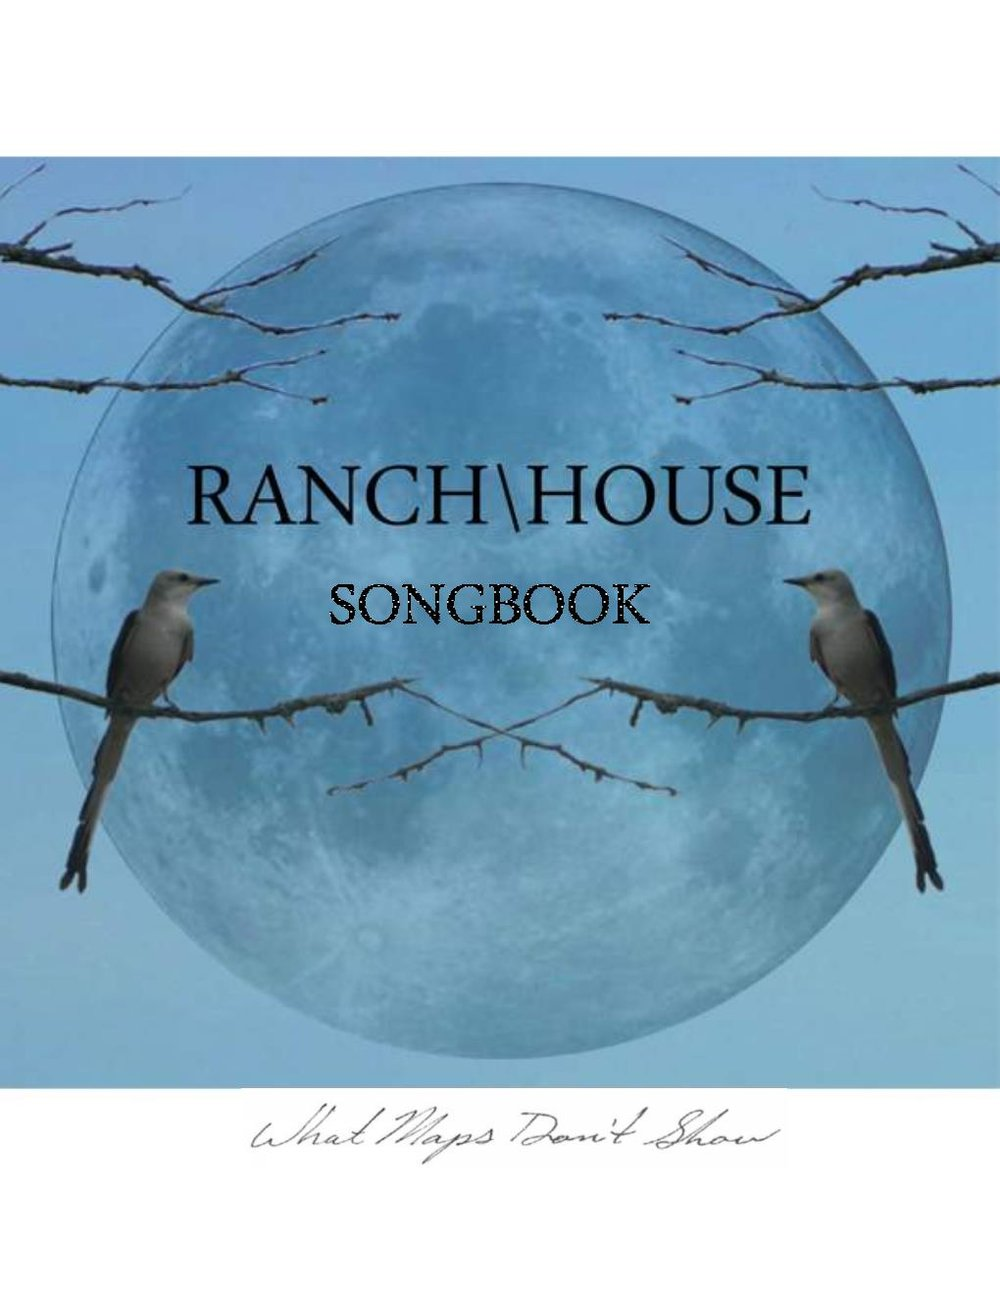 RanchHouseSongBook Page 001.jpg